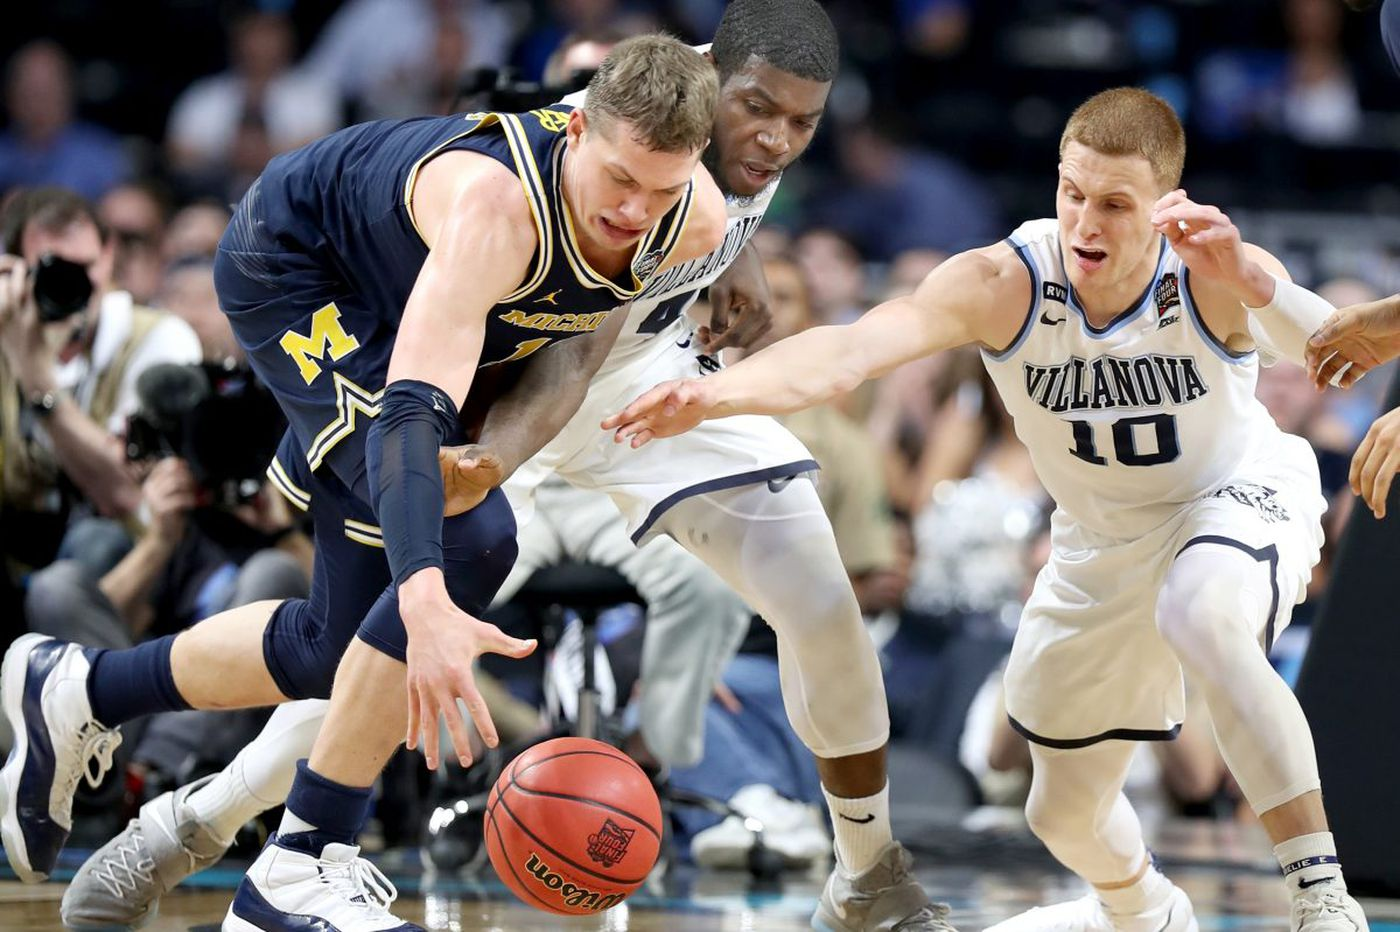 80f69e42109 Michigan star Moritz Wagner silenced by Villanova defense in NCAA  championship game | Mike Jensen